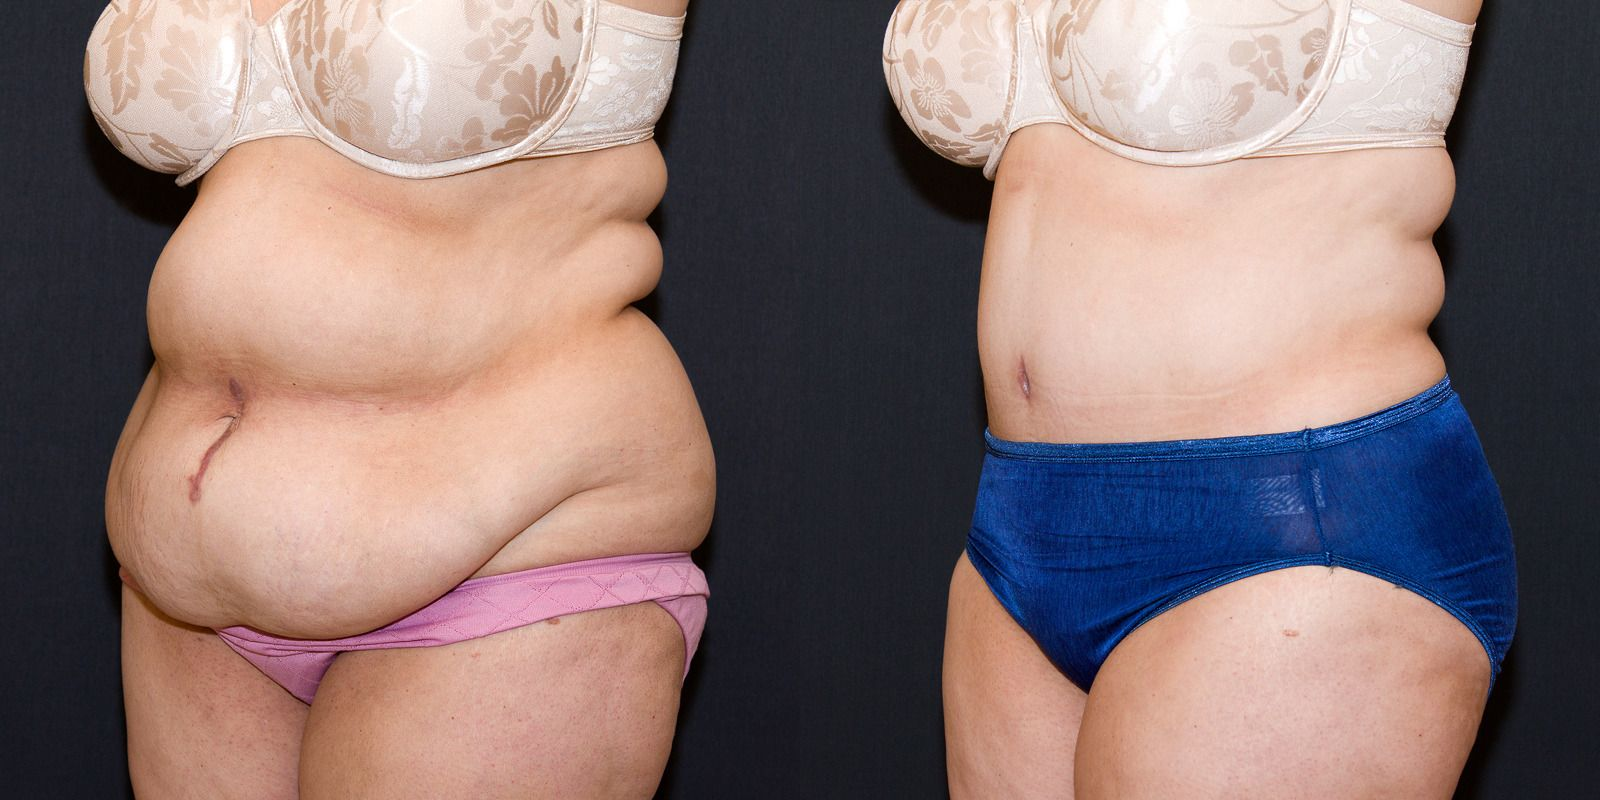 weight loss before or after tummy tuck